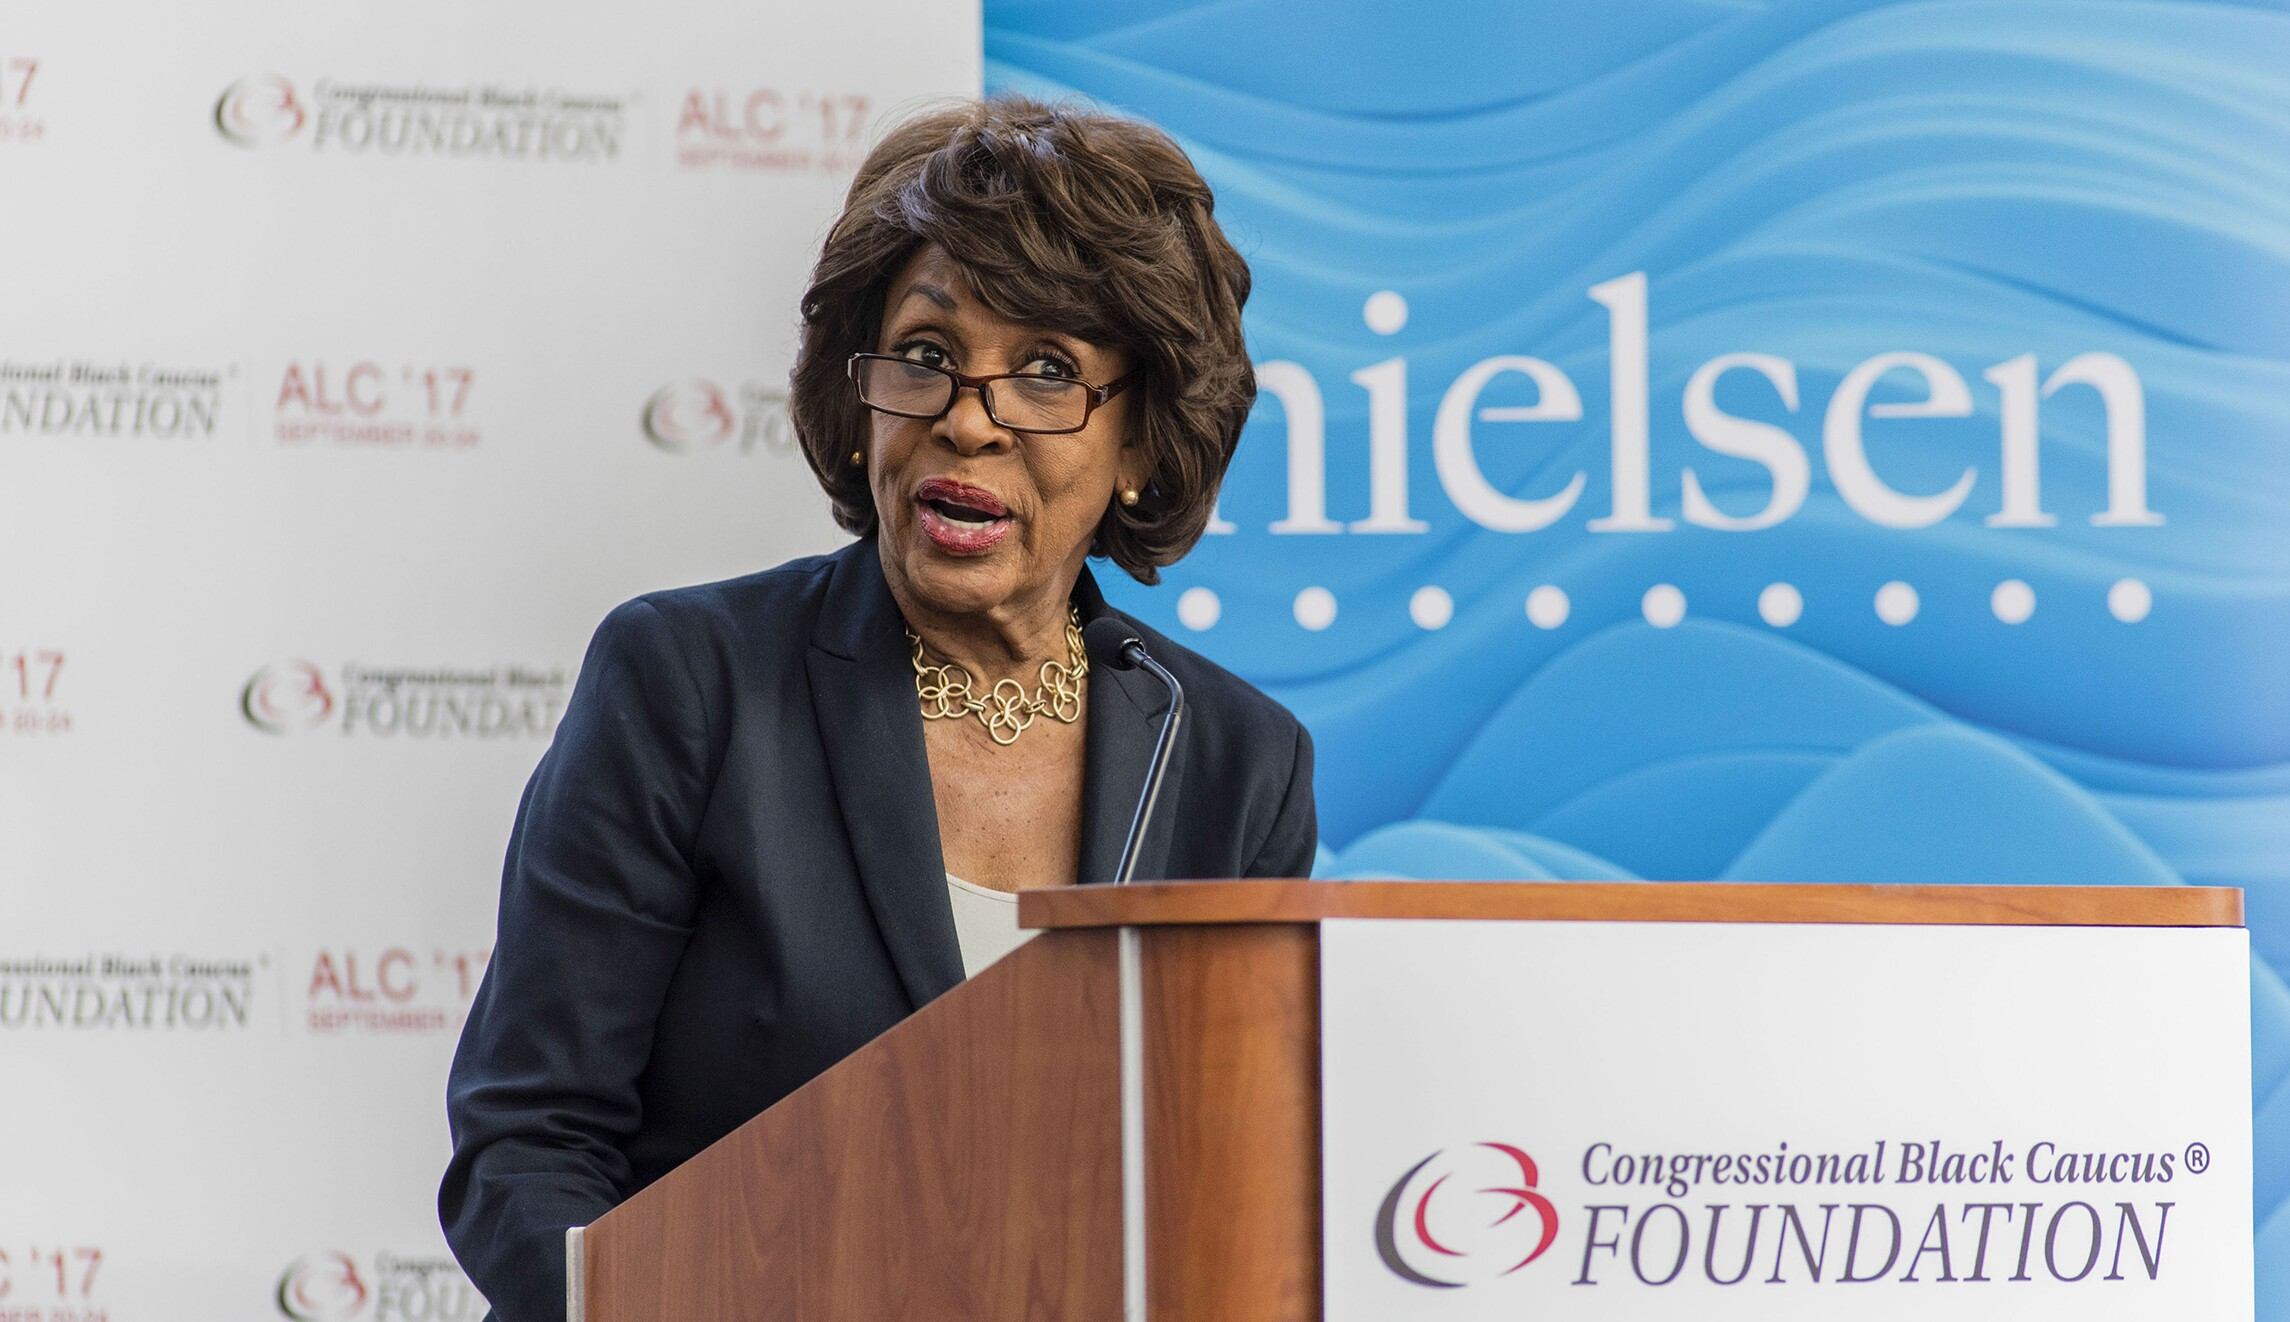 Maxine waters defends frederica wilson: this white house transforms